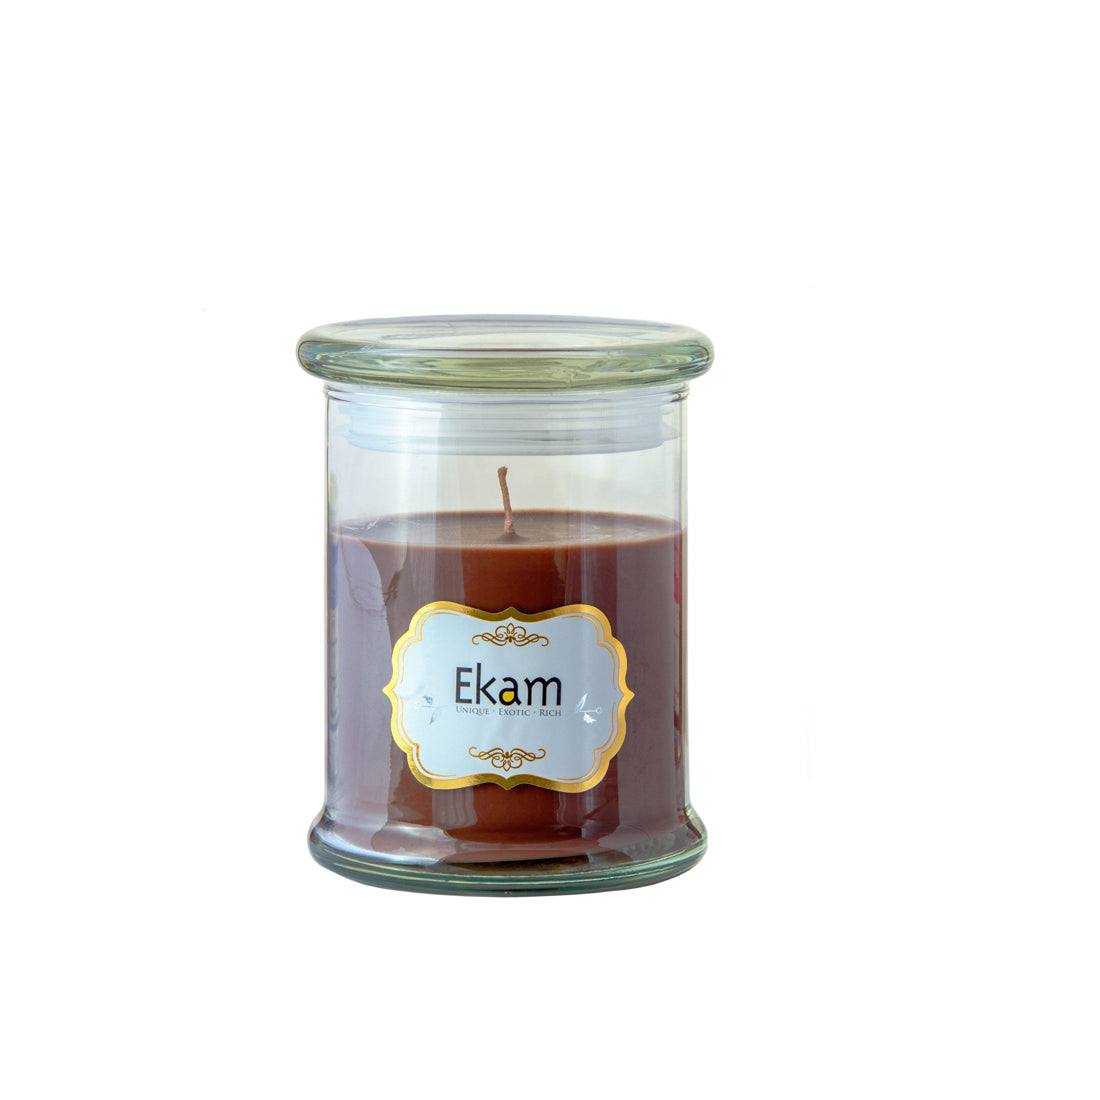 Mahogany Scented Candle | Decorative Jar Candle